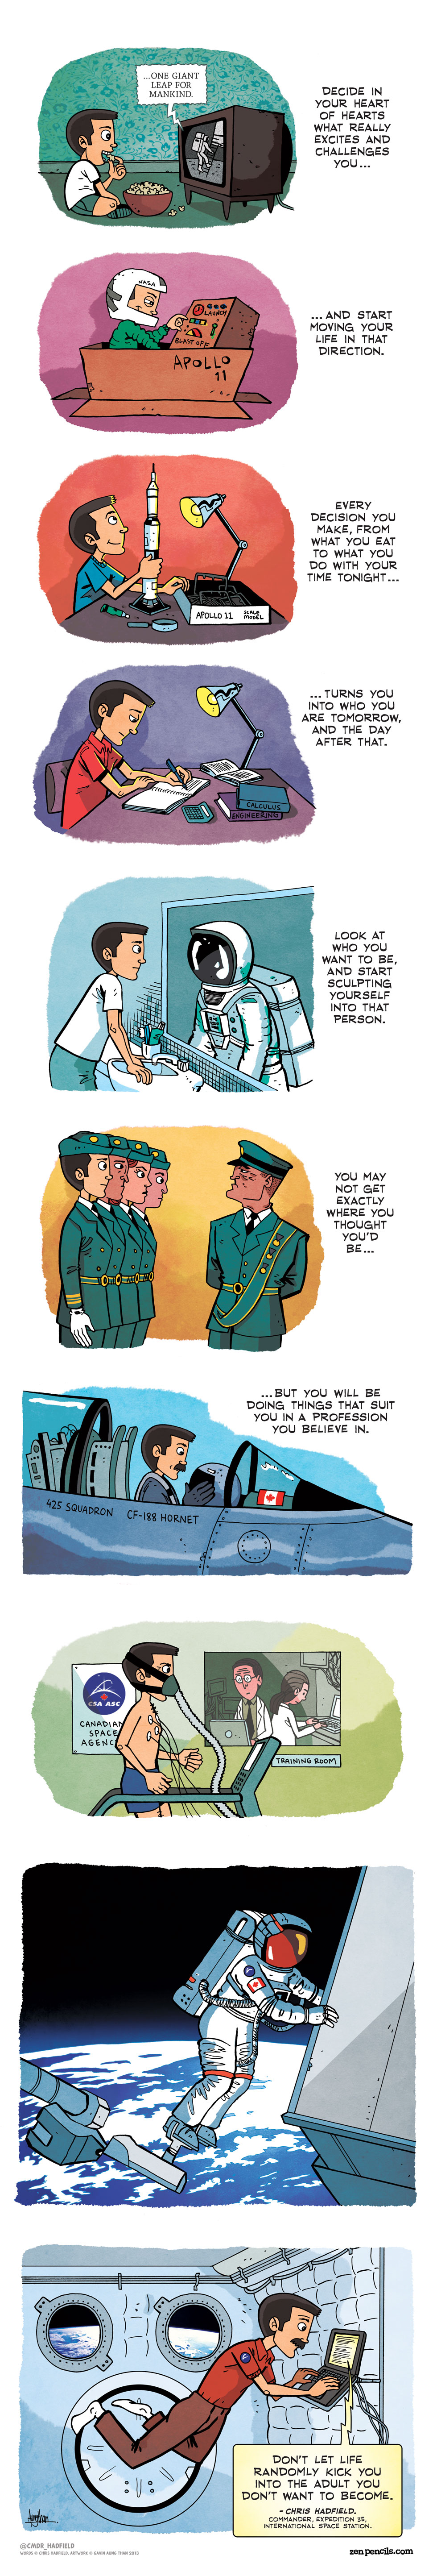 This strip features advice Commander Chris Hadfield delivered during a Reddit AMA (Credits: Gavin Aung Than/zenpencils.com).